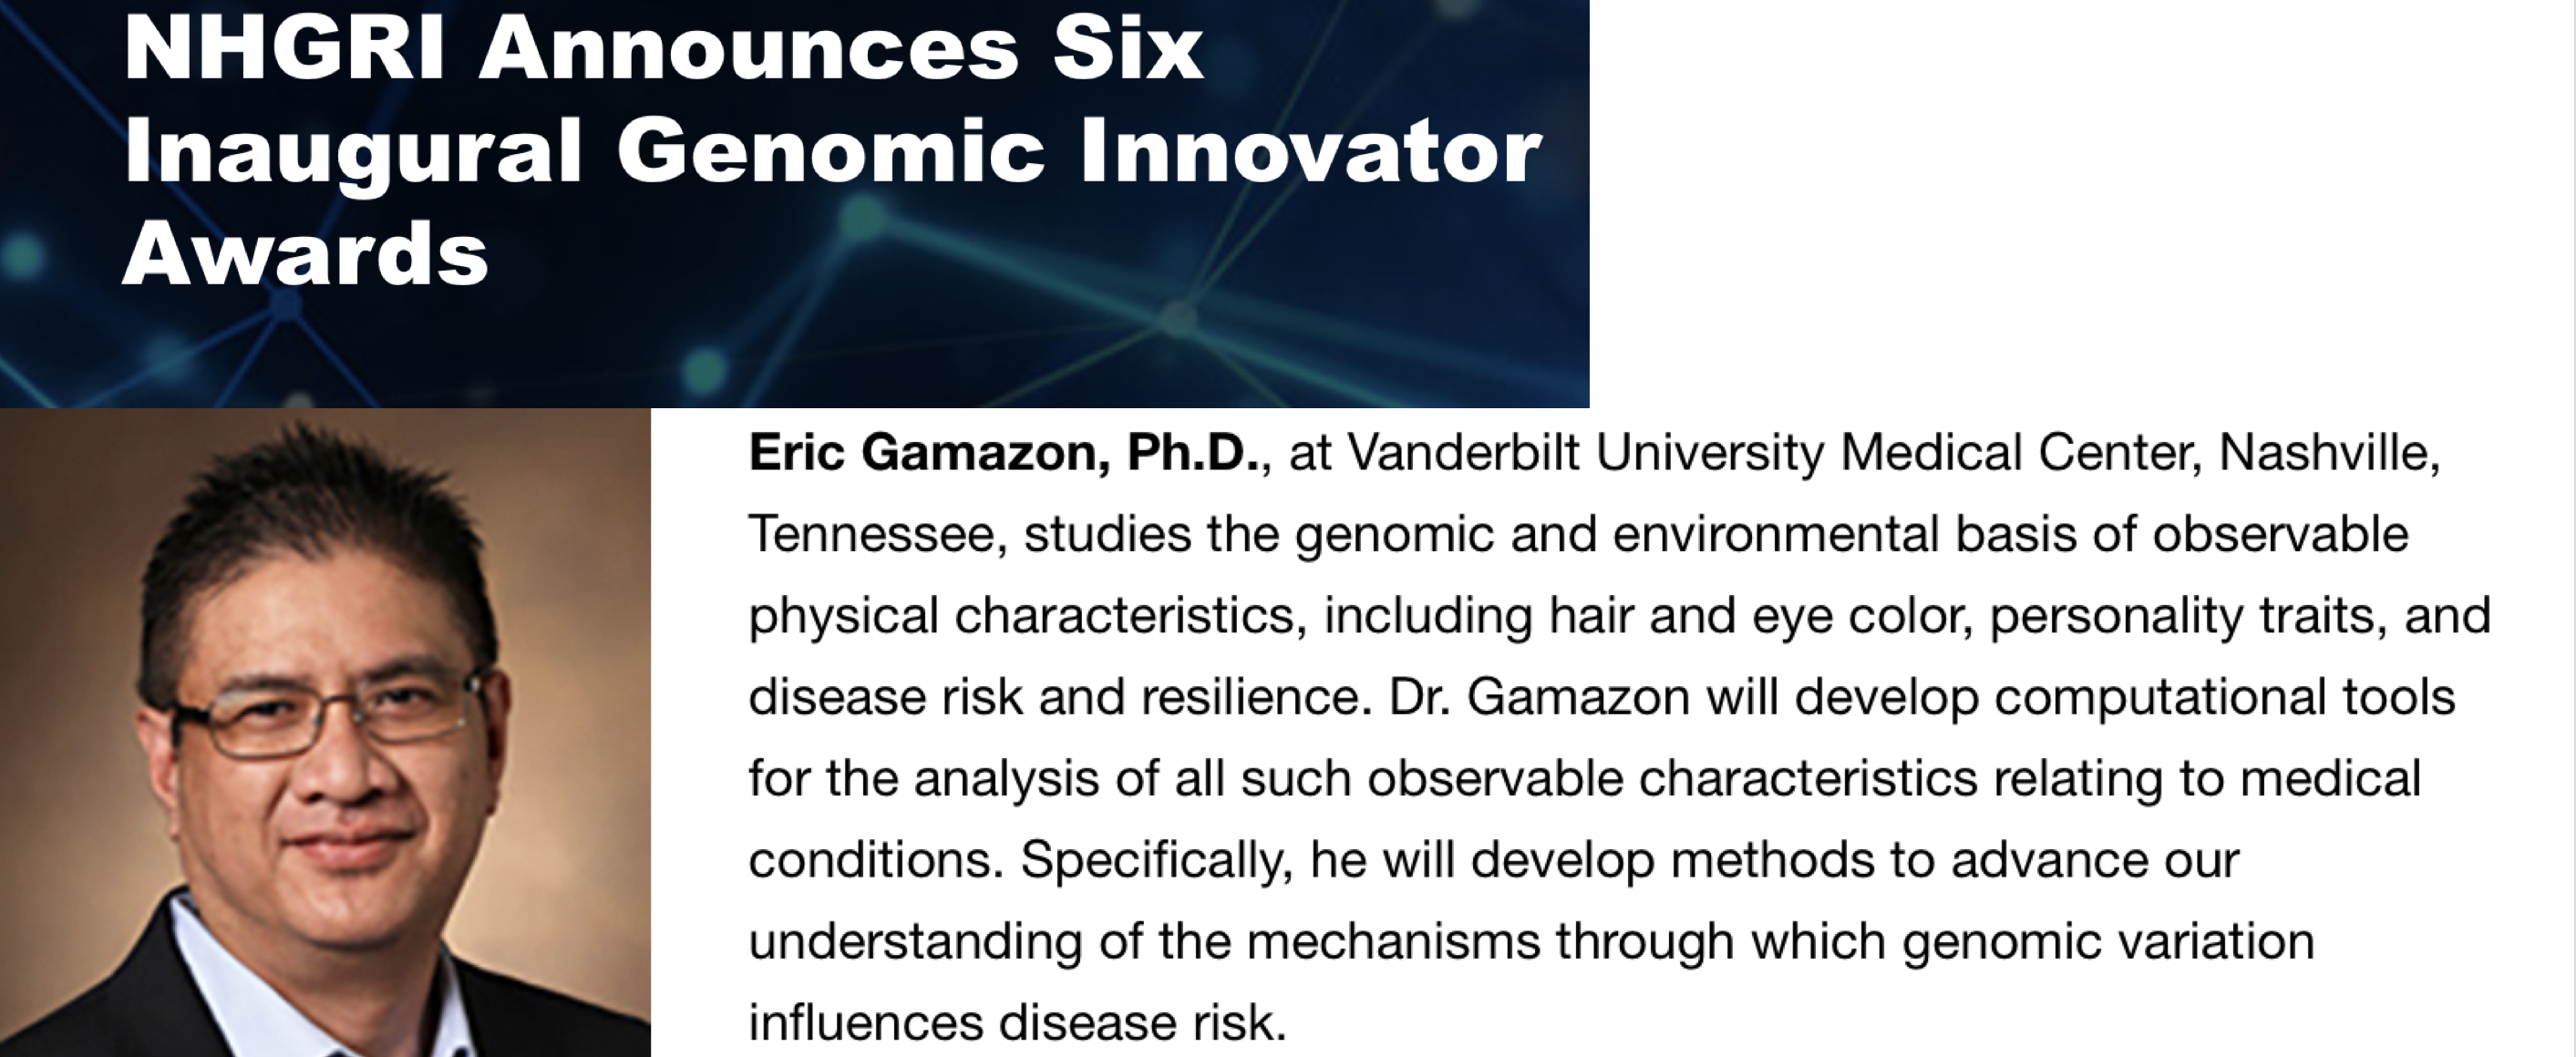 Eric Gamazon, Ph.D., receives inaugural National Human Genome Research Institute Genomic Innovator Award